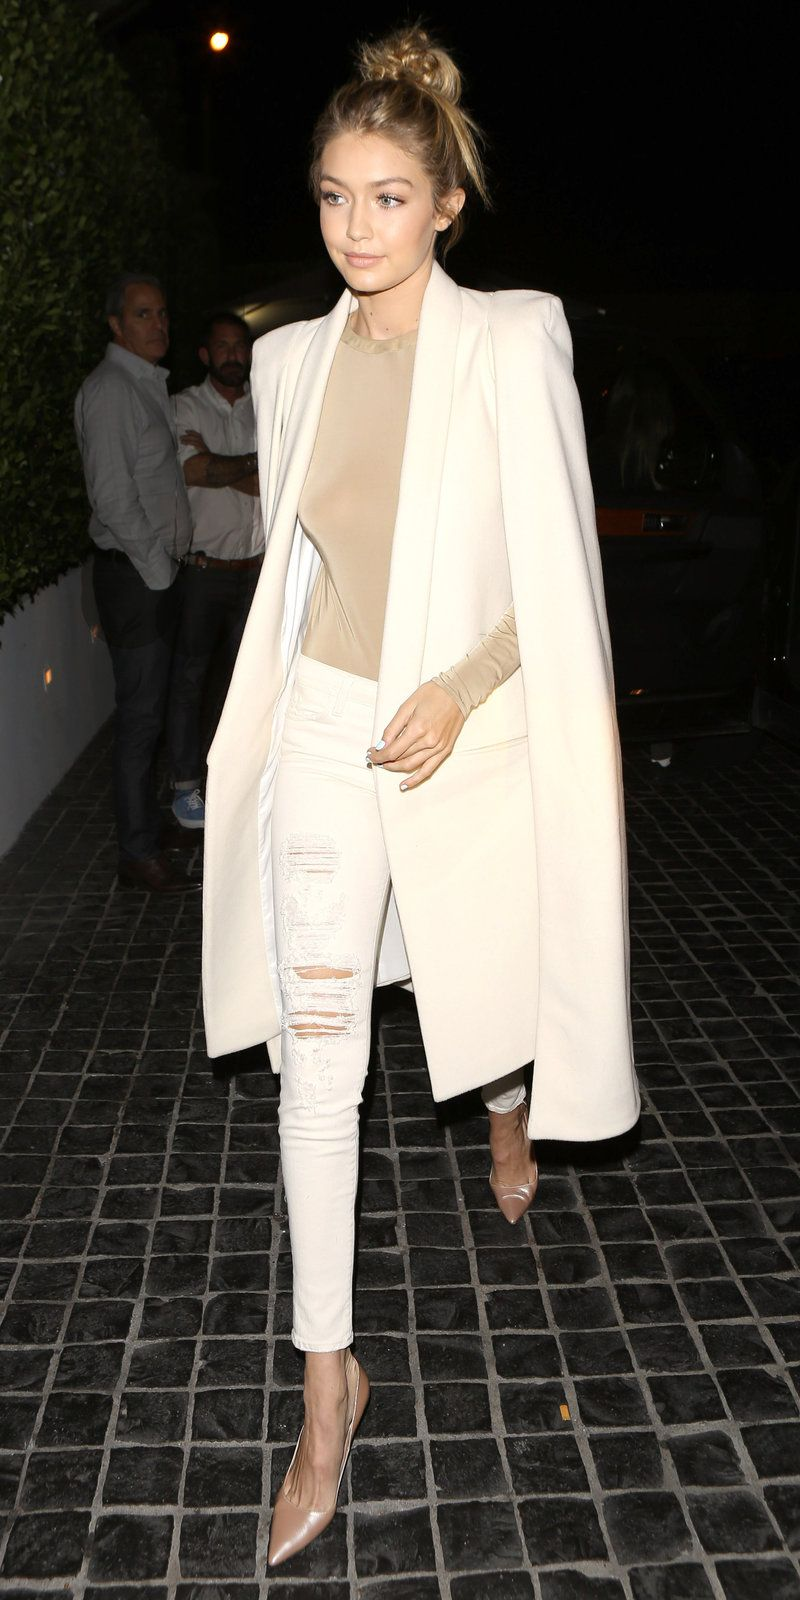 How to Wear White Jeans in the Winter – Celebrities in White Jeans